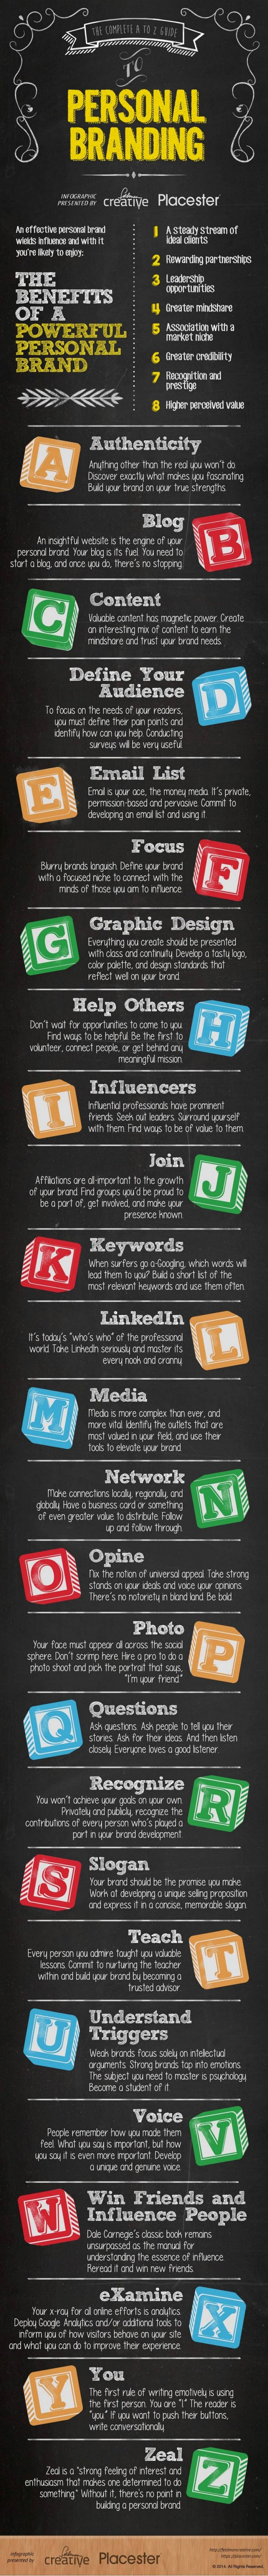 personal branding tips infographic